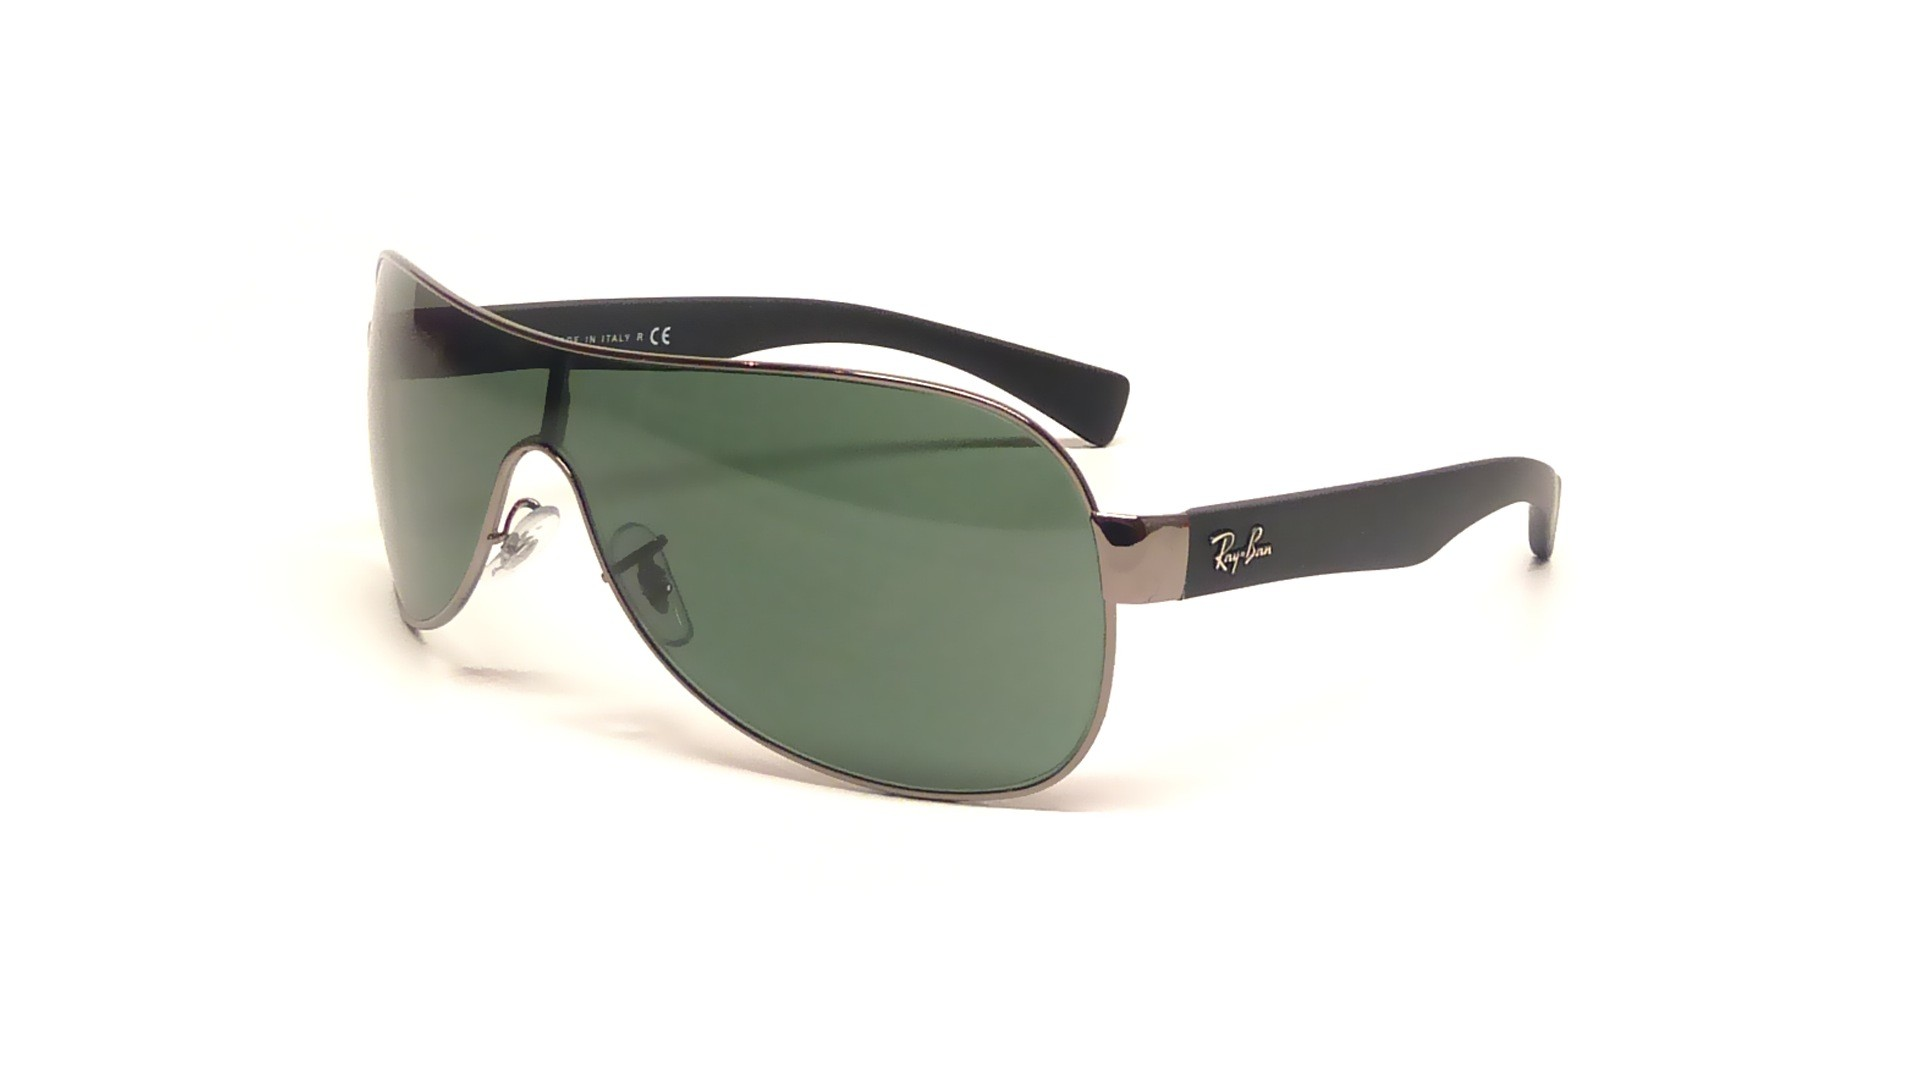 f2ab351ed0 Ray-Ban Mask Emma Black RB3471 004 71 32